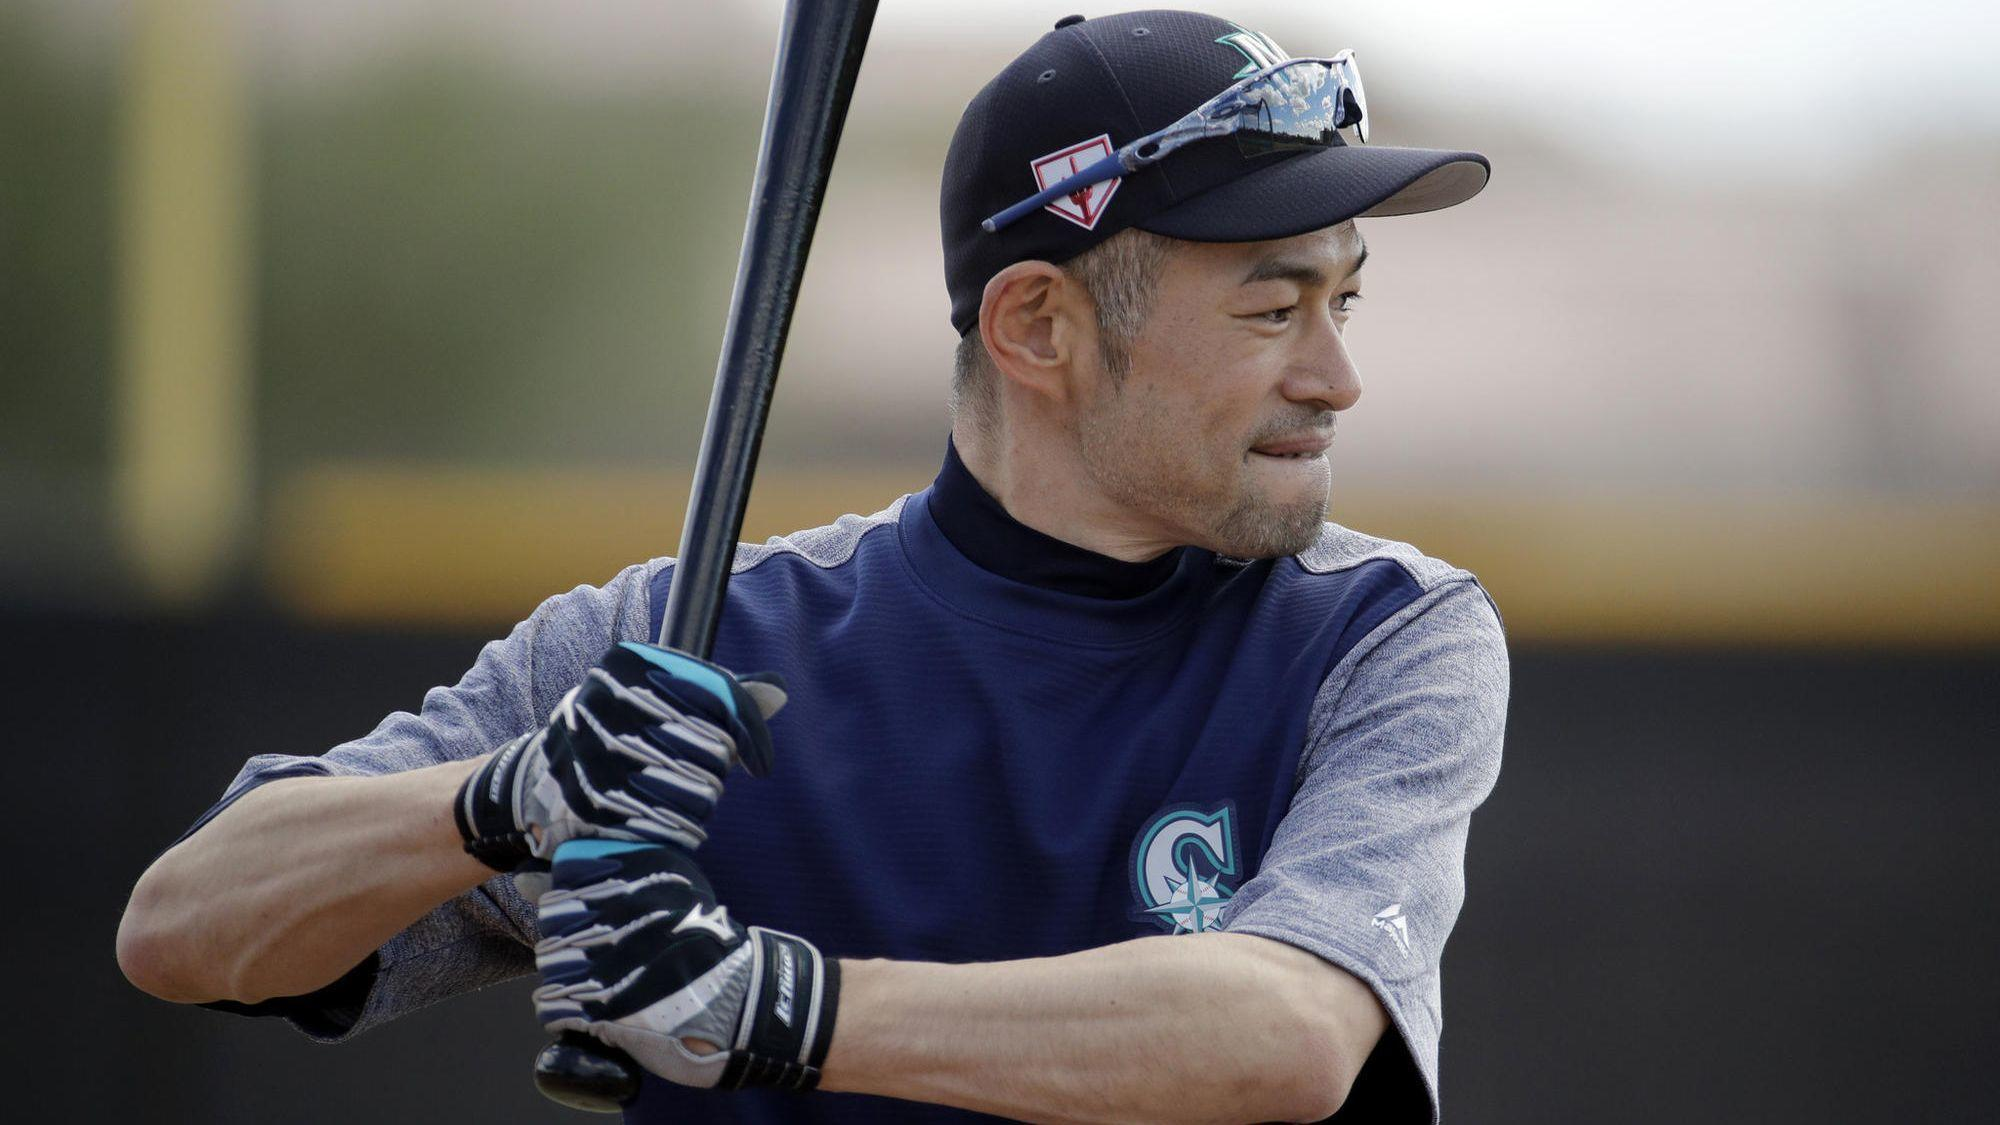 fb4fc703cc Ichiro Suzuki back in camp with the Mariners at age 45 with a chance to  play in 2-game series in Tokyo